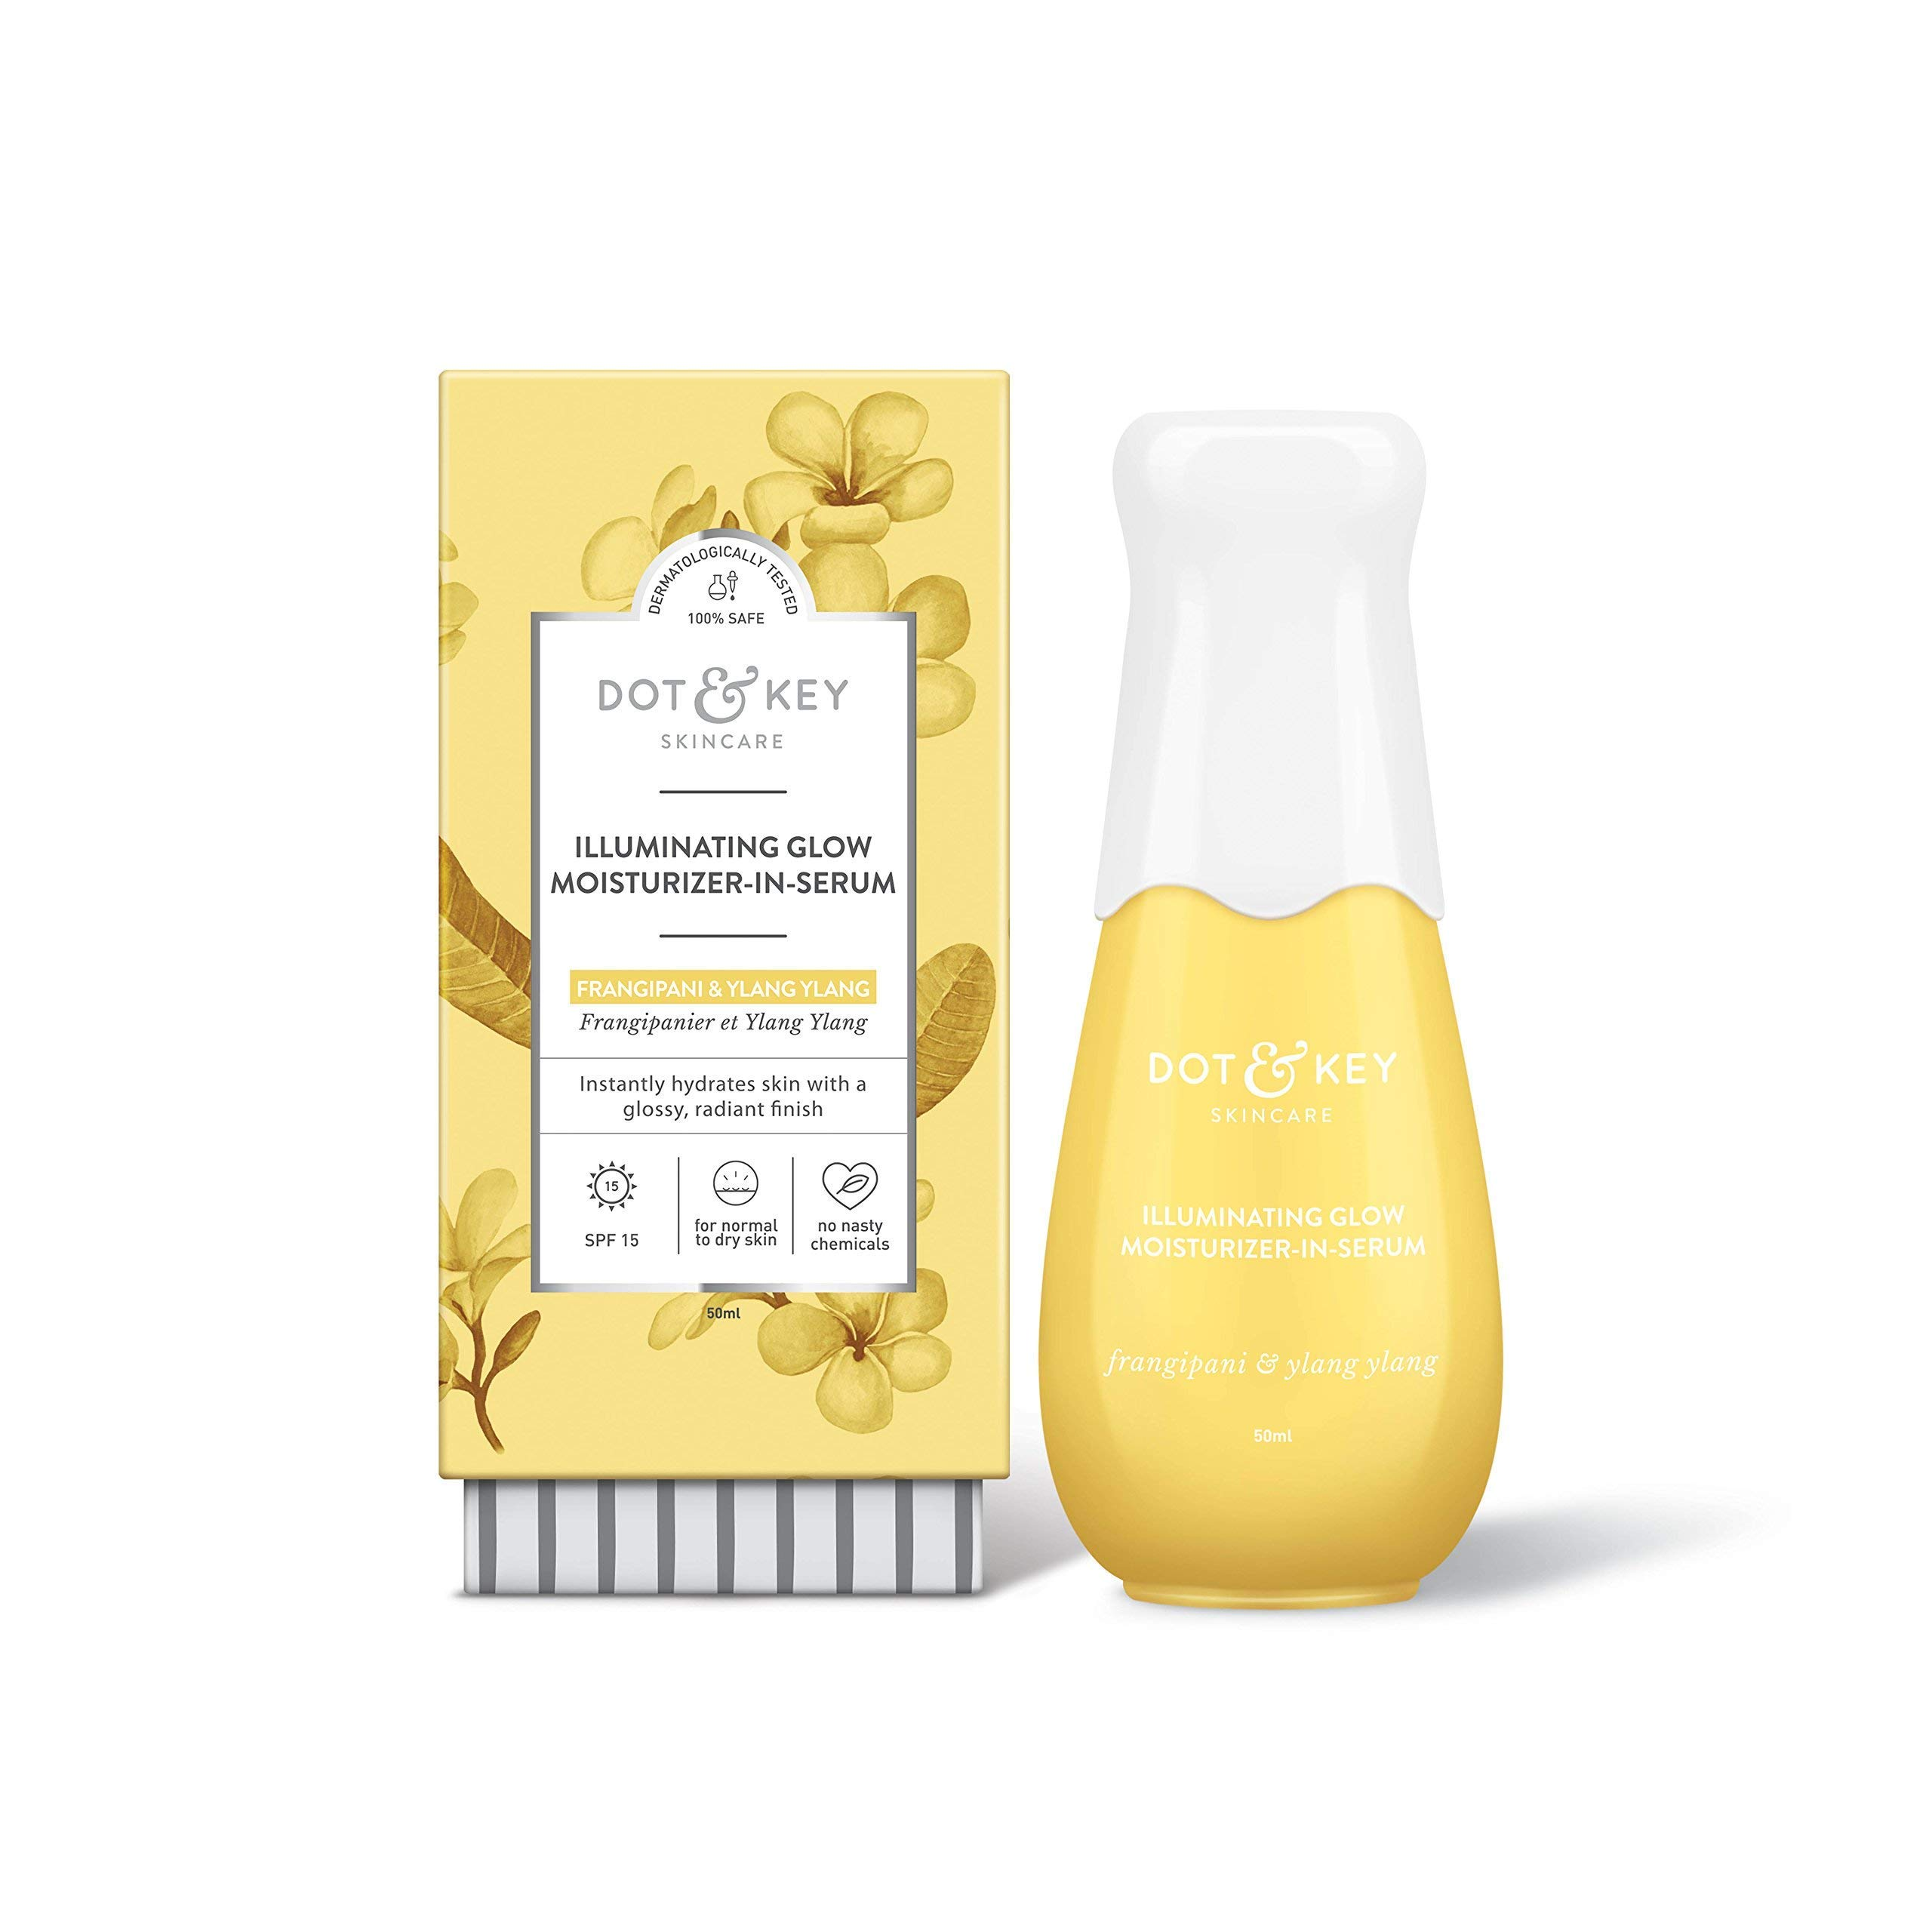 Dot & Key Illuminating Glow Moisturizer-in-Serum